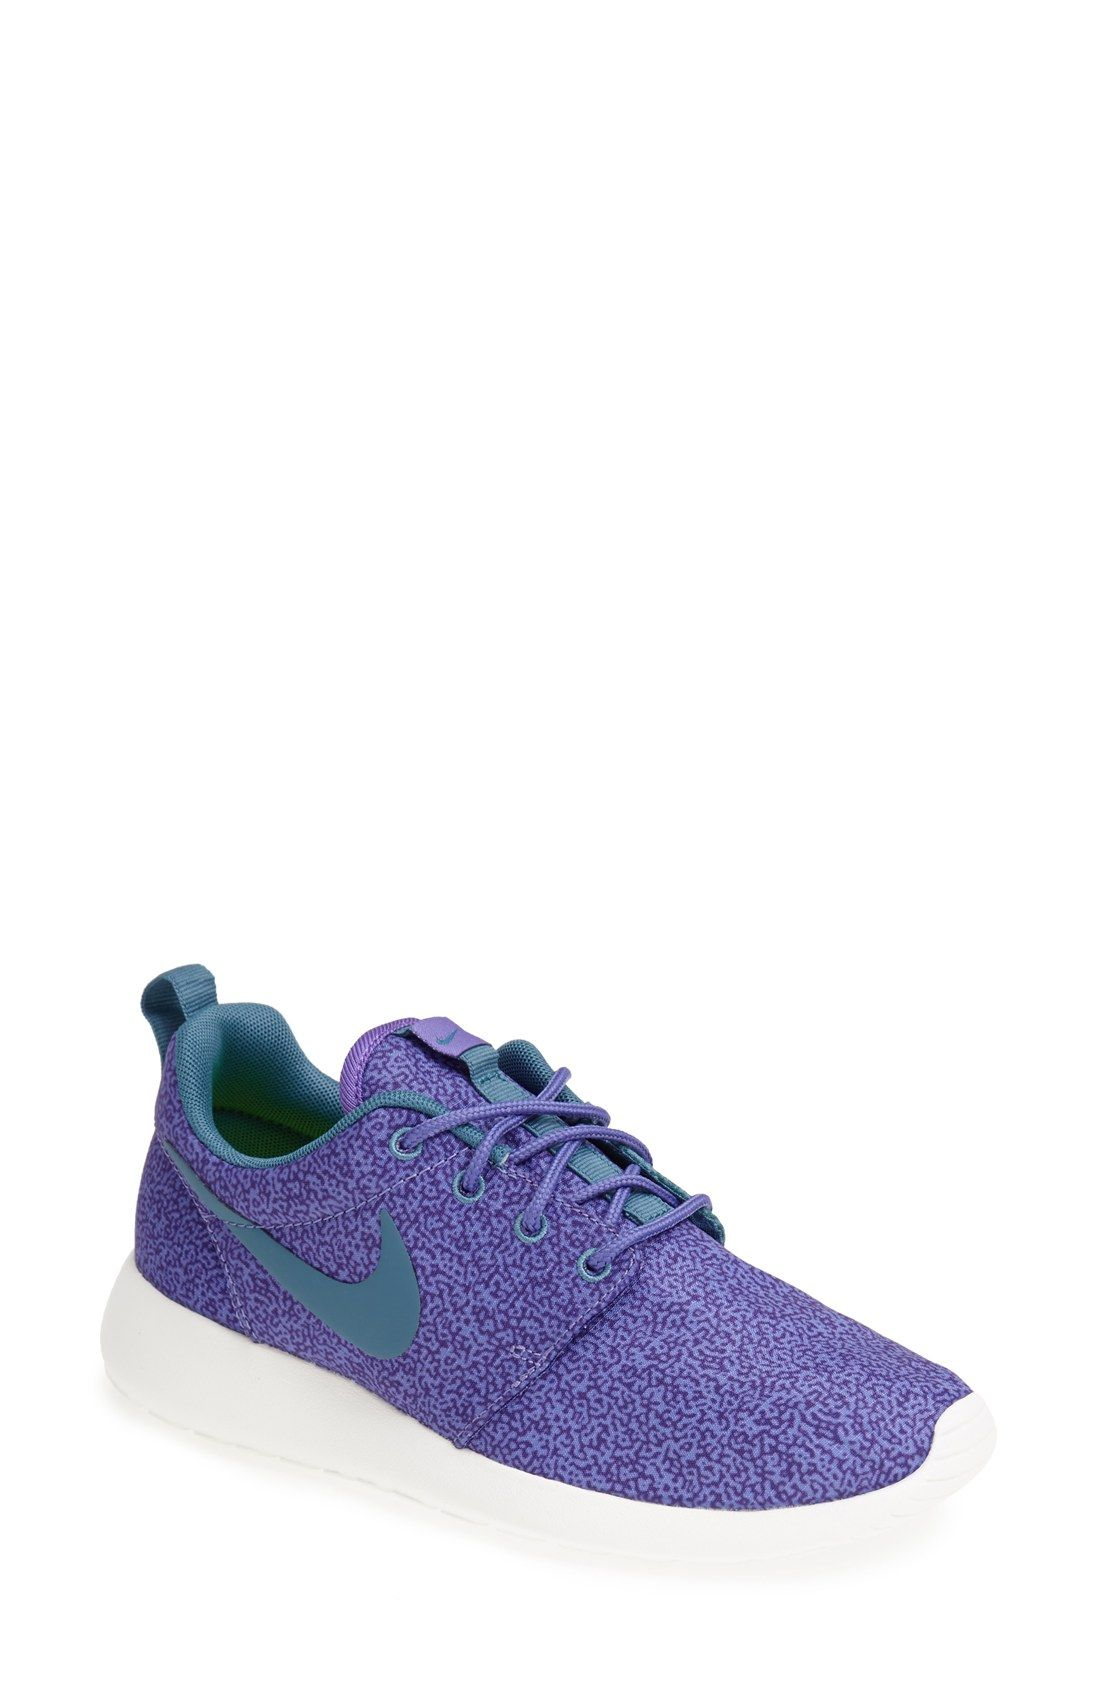 pretty nice 9e2b8 a6277 Such fun purple Roshe running shoes. Such fun purple Roshe running shoes  Roshe Run Shoes, Nike ...